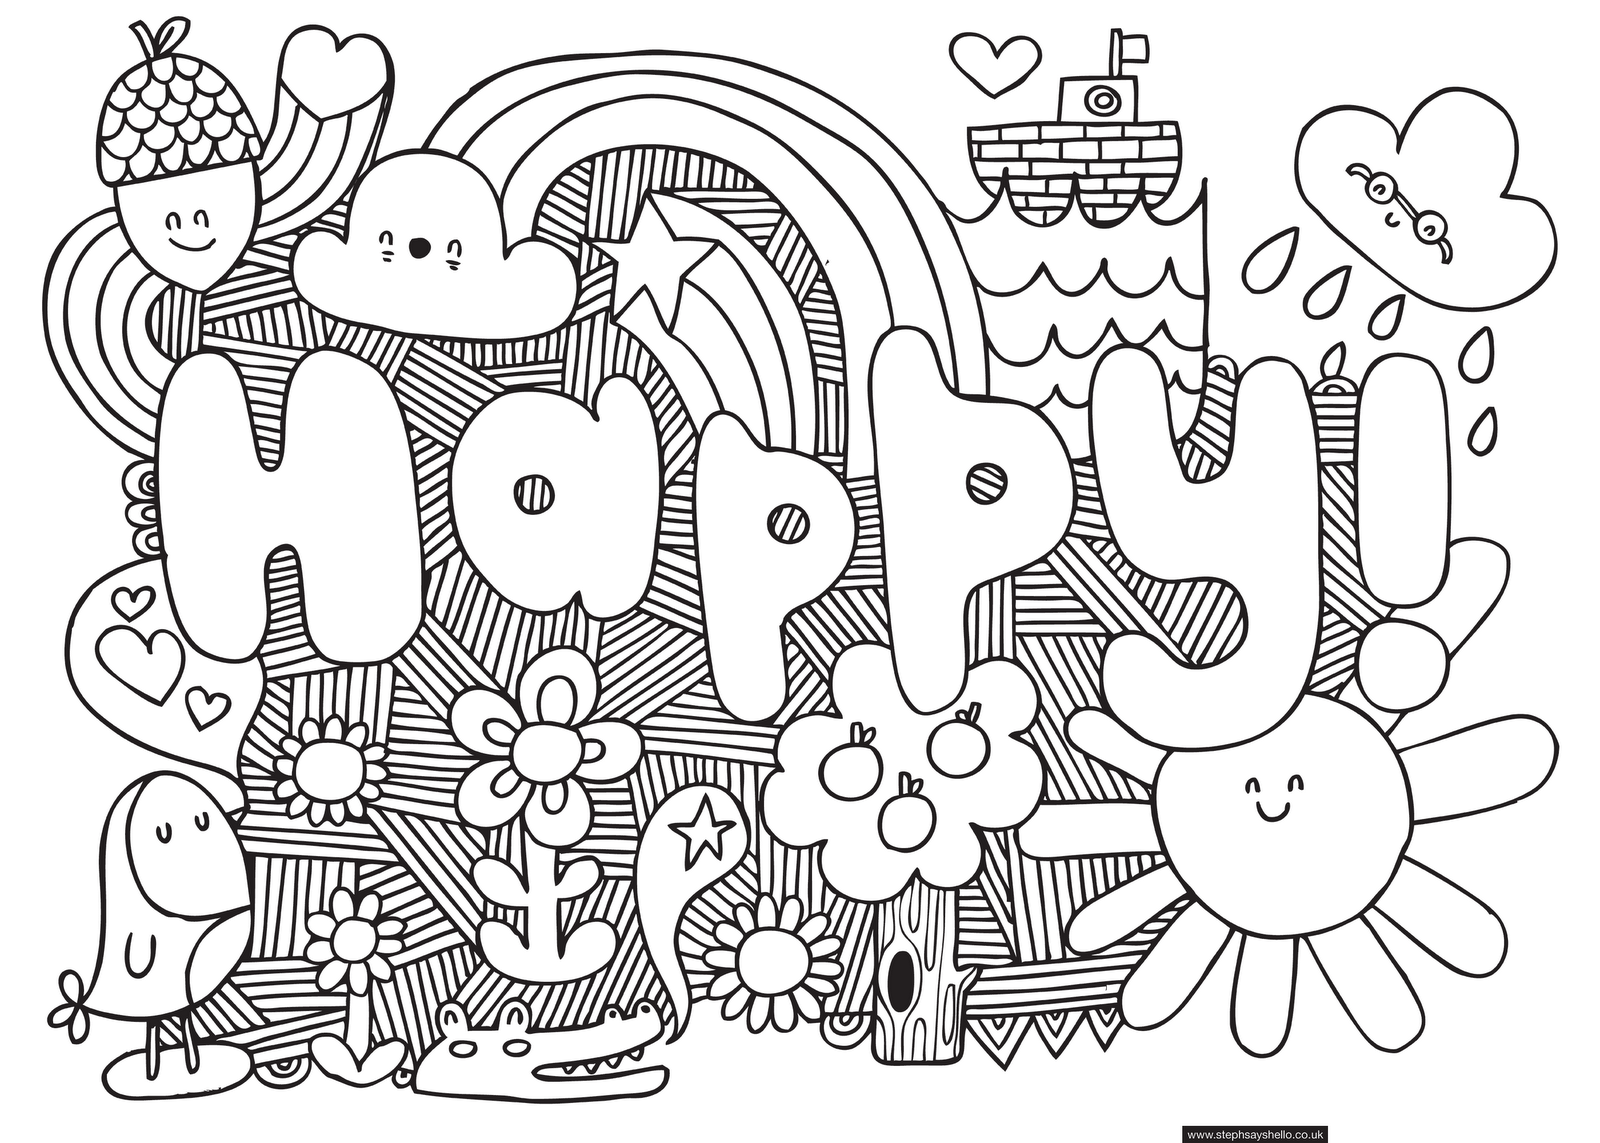 Cool Coloring Pages Free Online Printable Sheets For Kids Get The Latest Images Favorite To Print